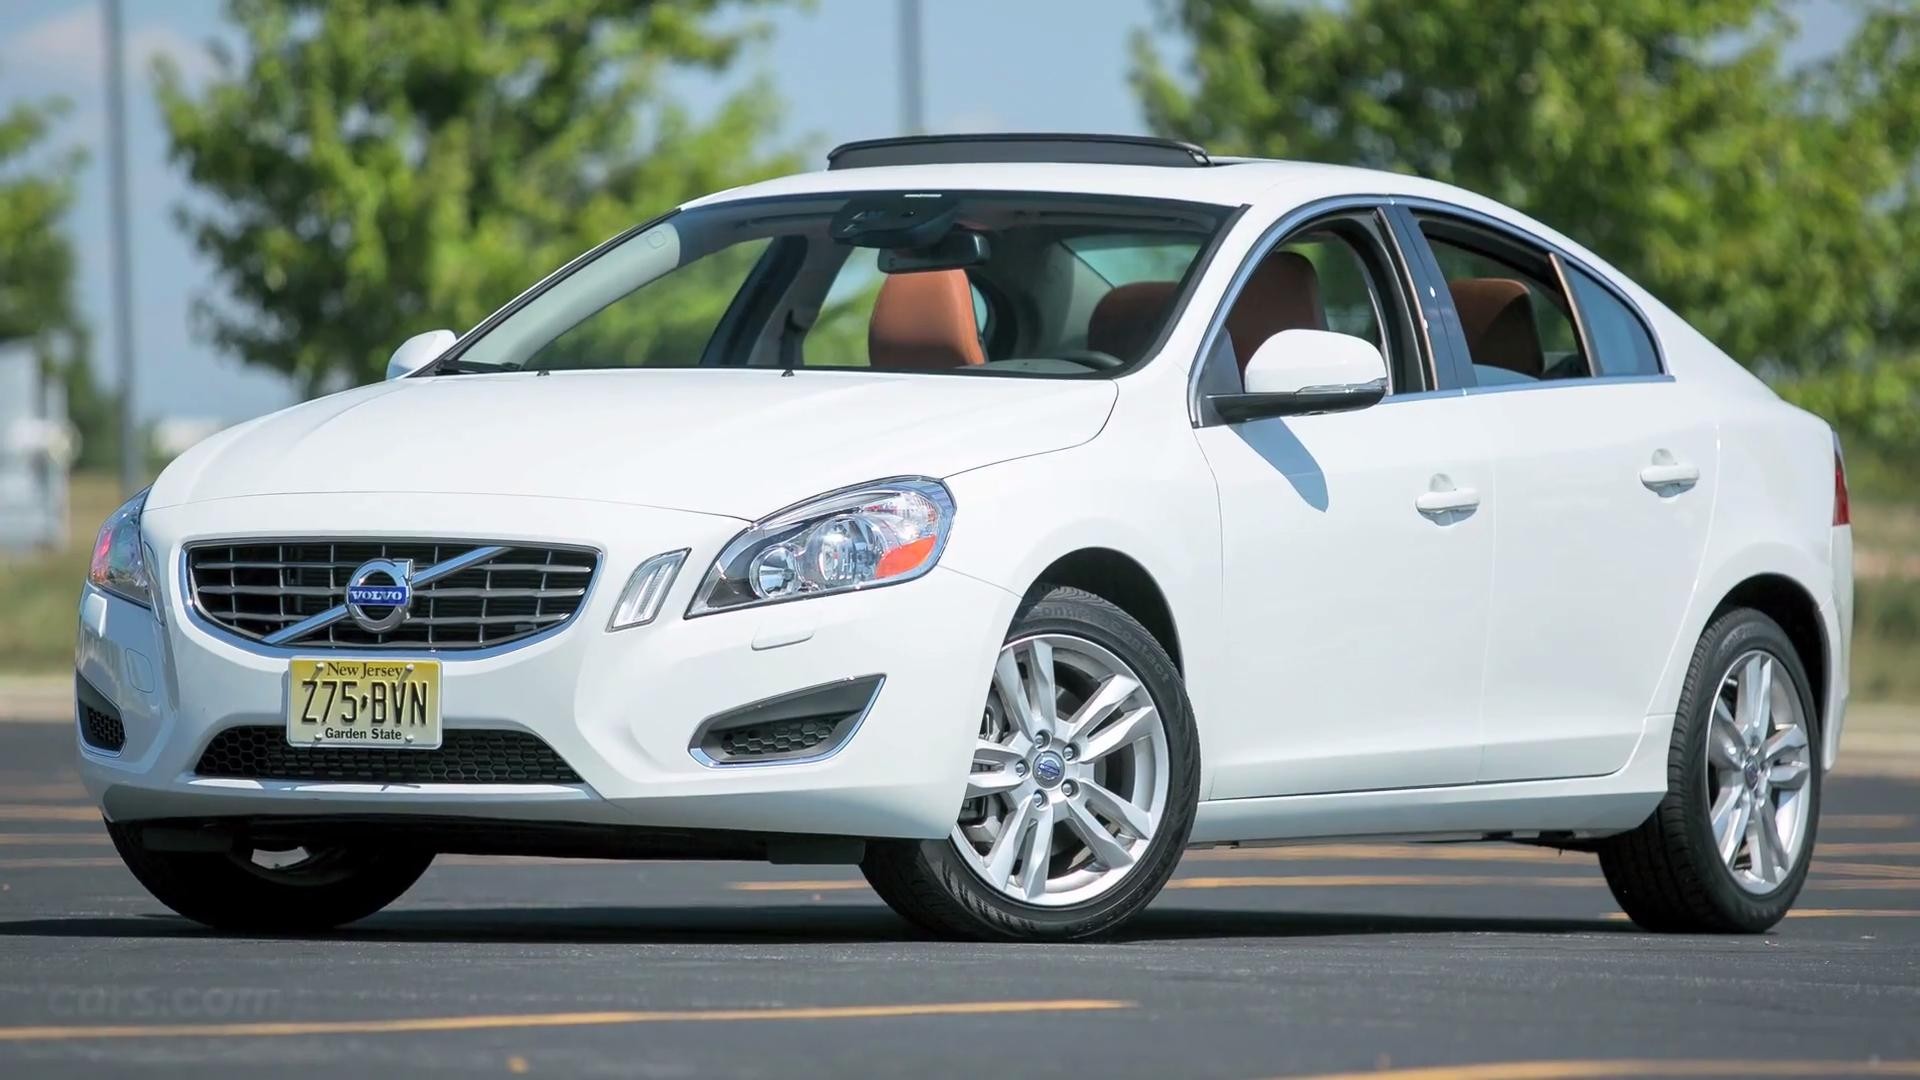 2013 volvo s60 t5 review 2018 volvo reviews. Black Bedroom Furniture Sets. Home Design Ideas